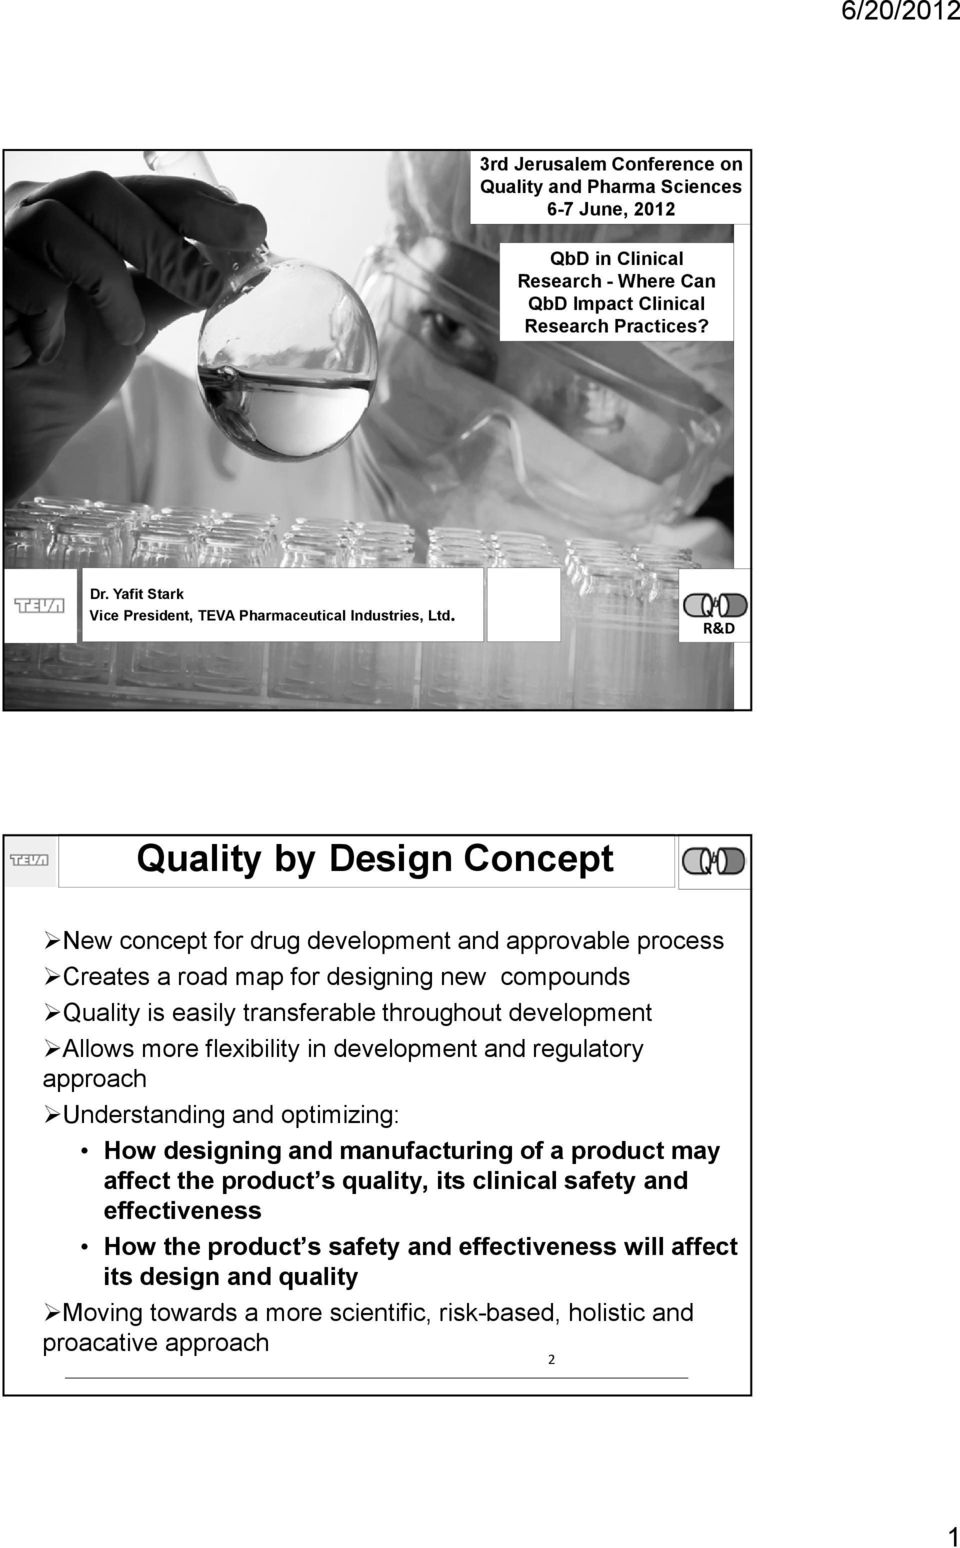 R&D Quality by Design Concept New concept for drug development and approvable process Creates a road map for designing new compounds Quality is easily transferable throughout development Allows